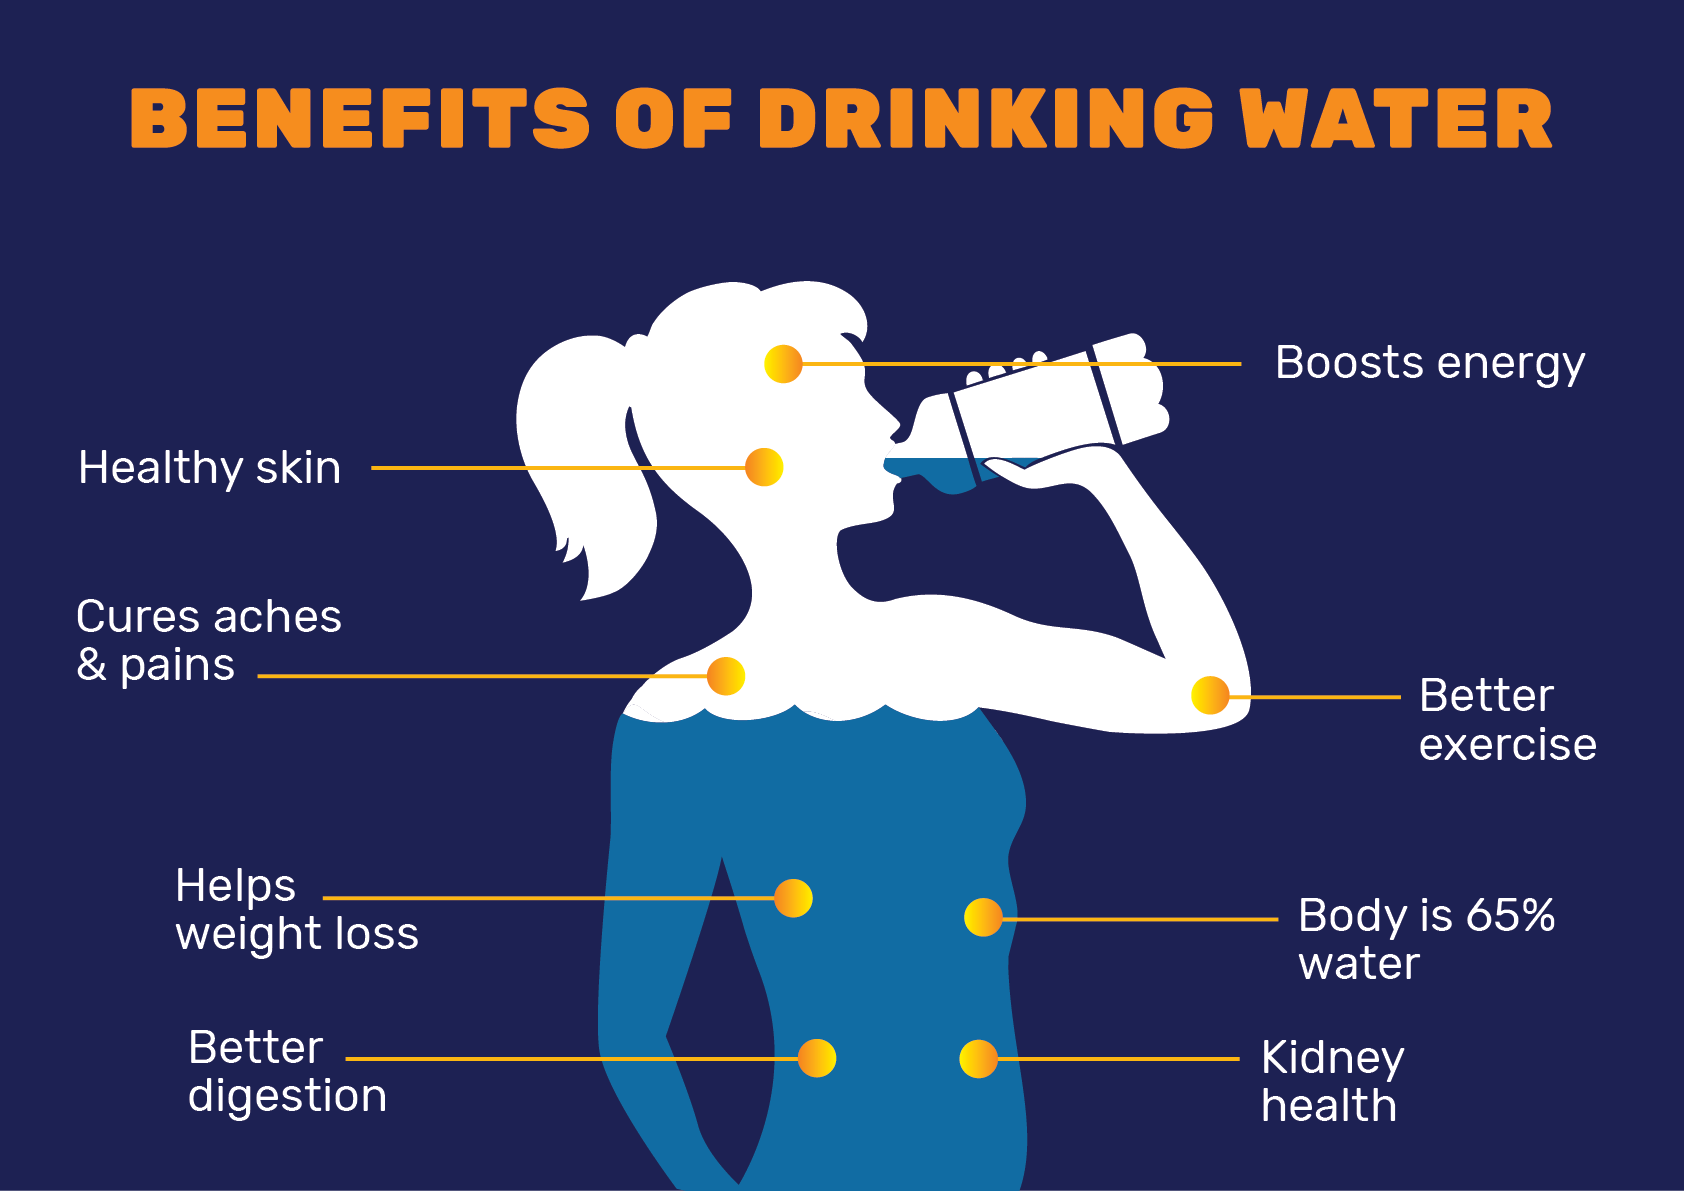 benefits of drinking water infographic